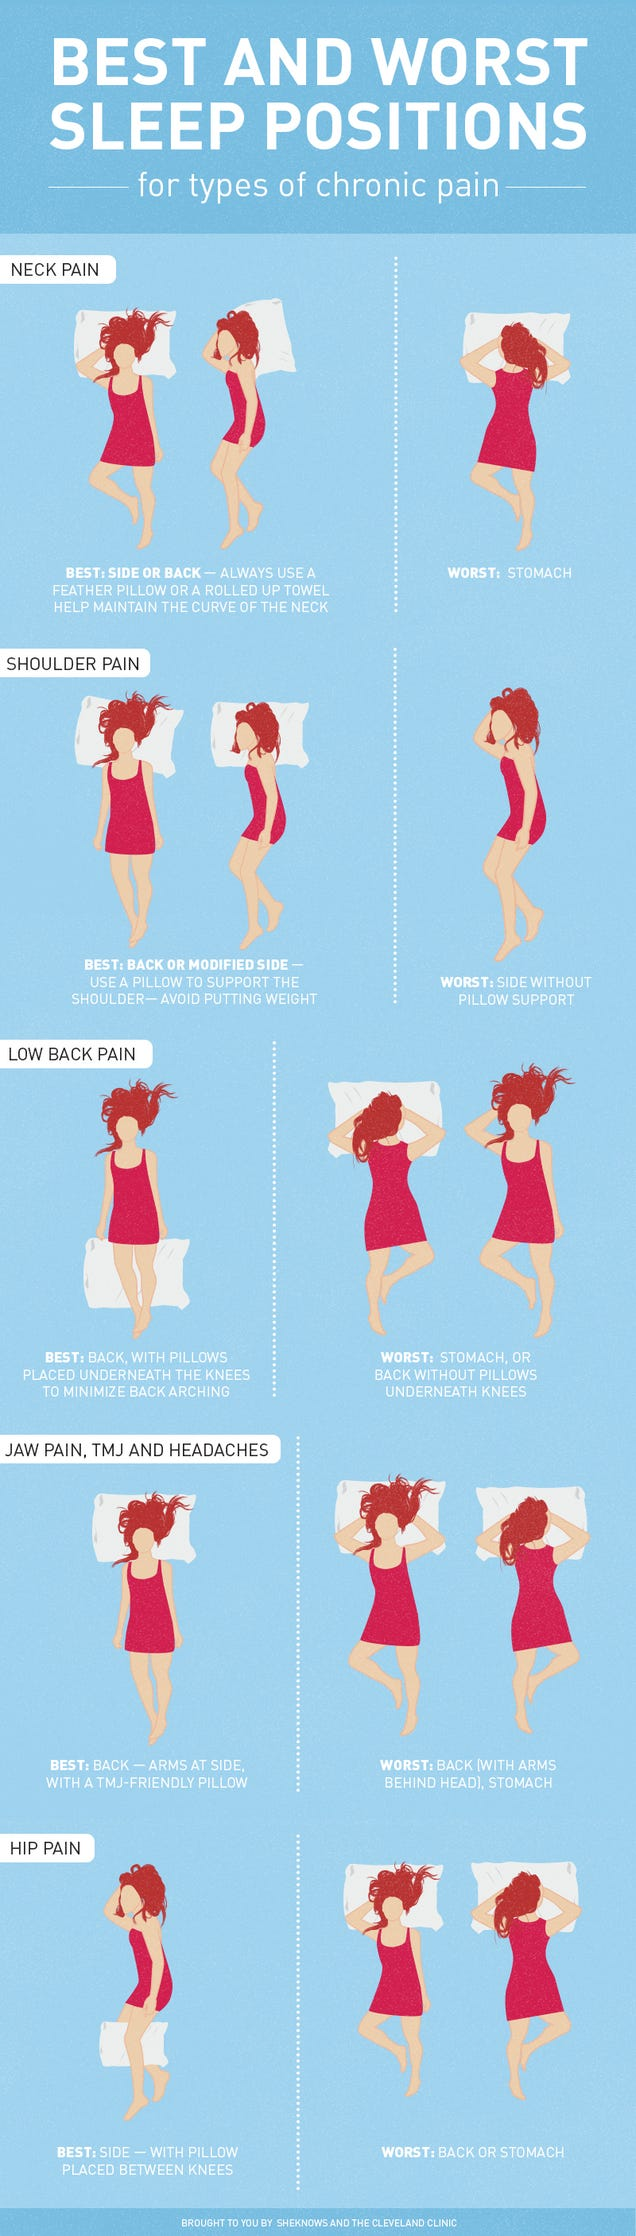 The graphic shows the best and worst sleeping positions for Best sleeping posture for lower back pain